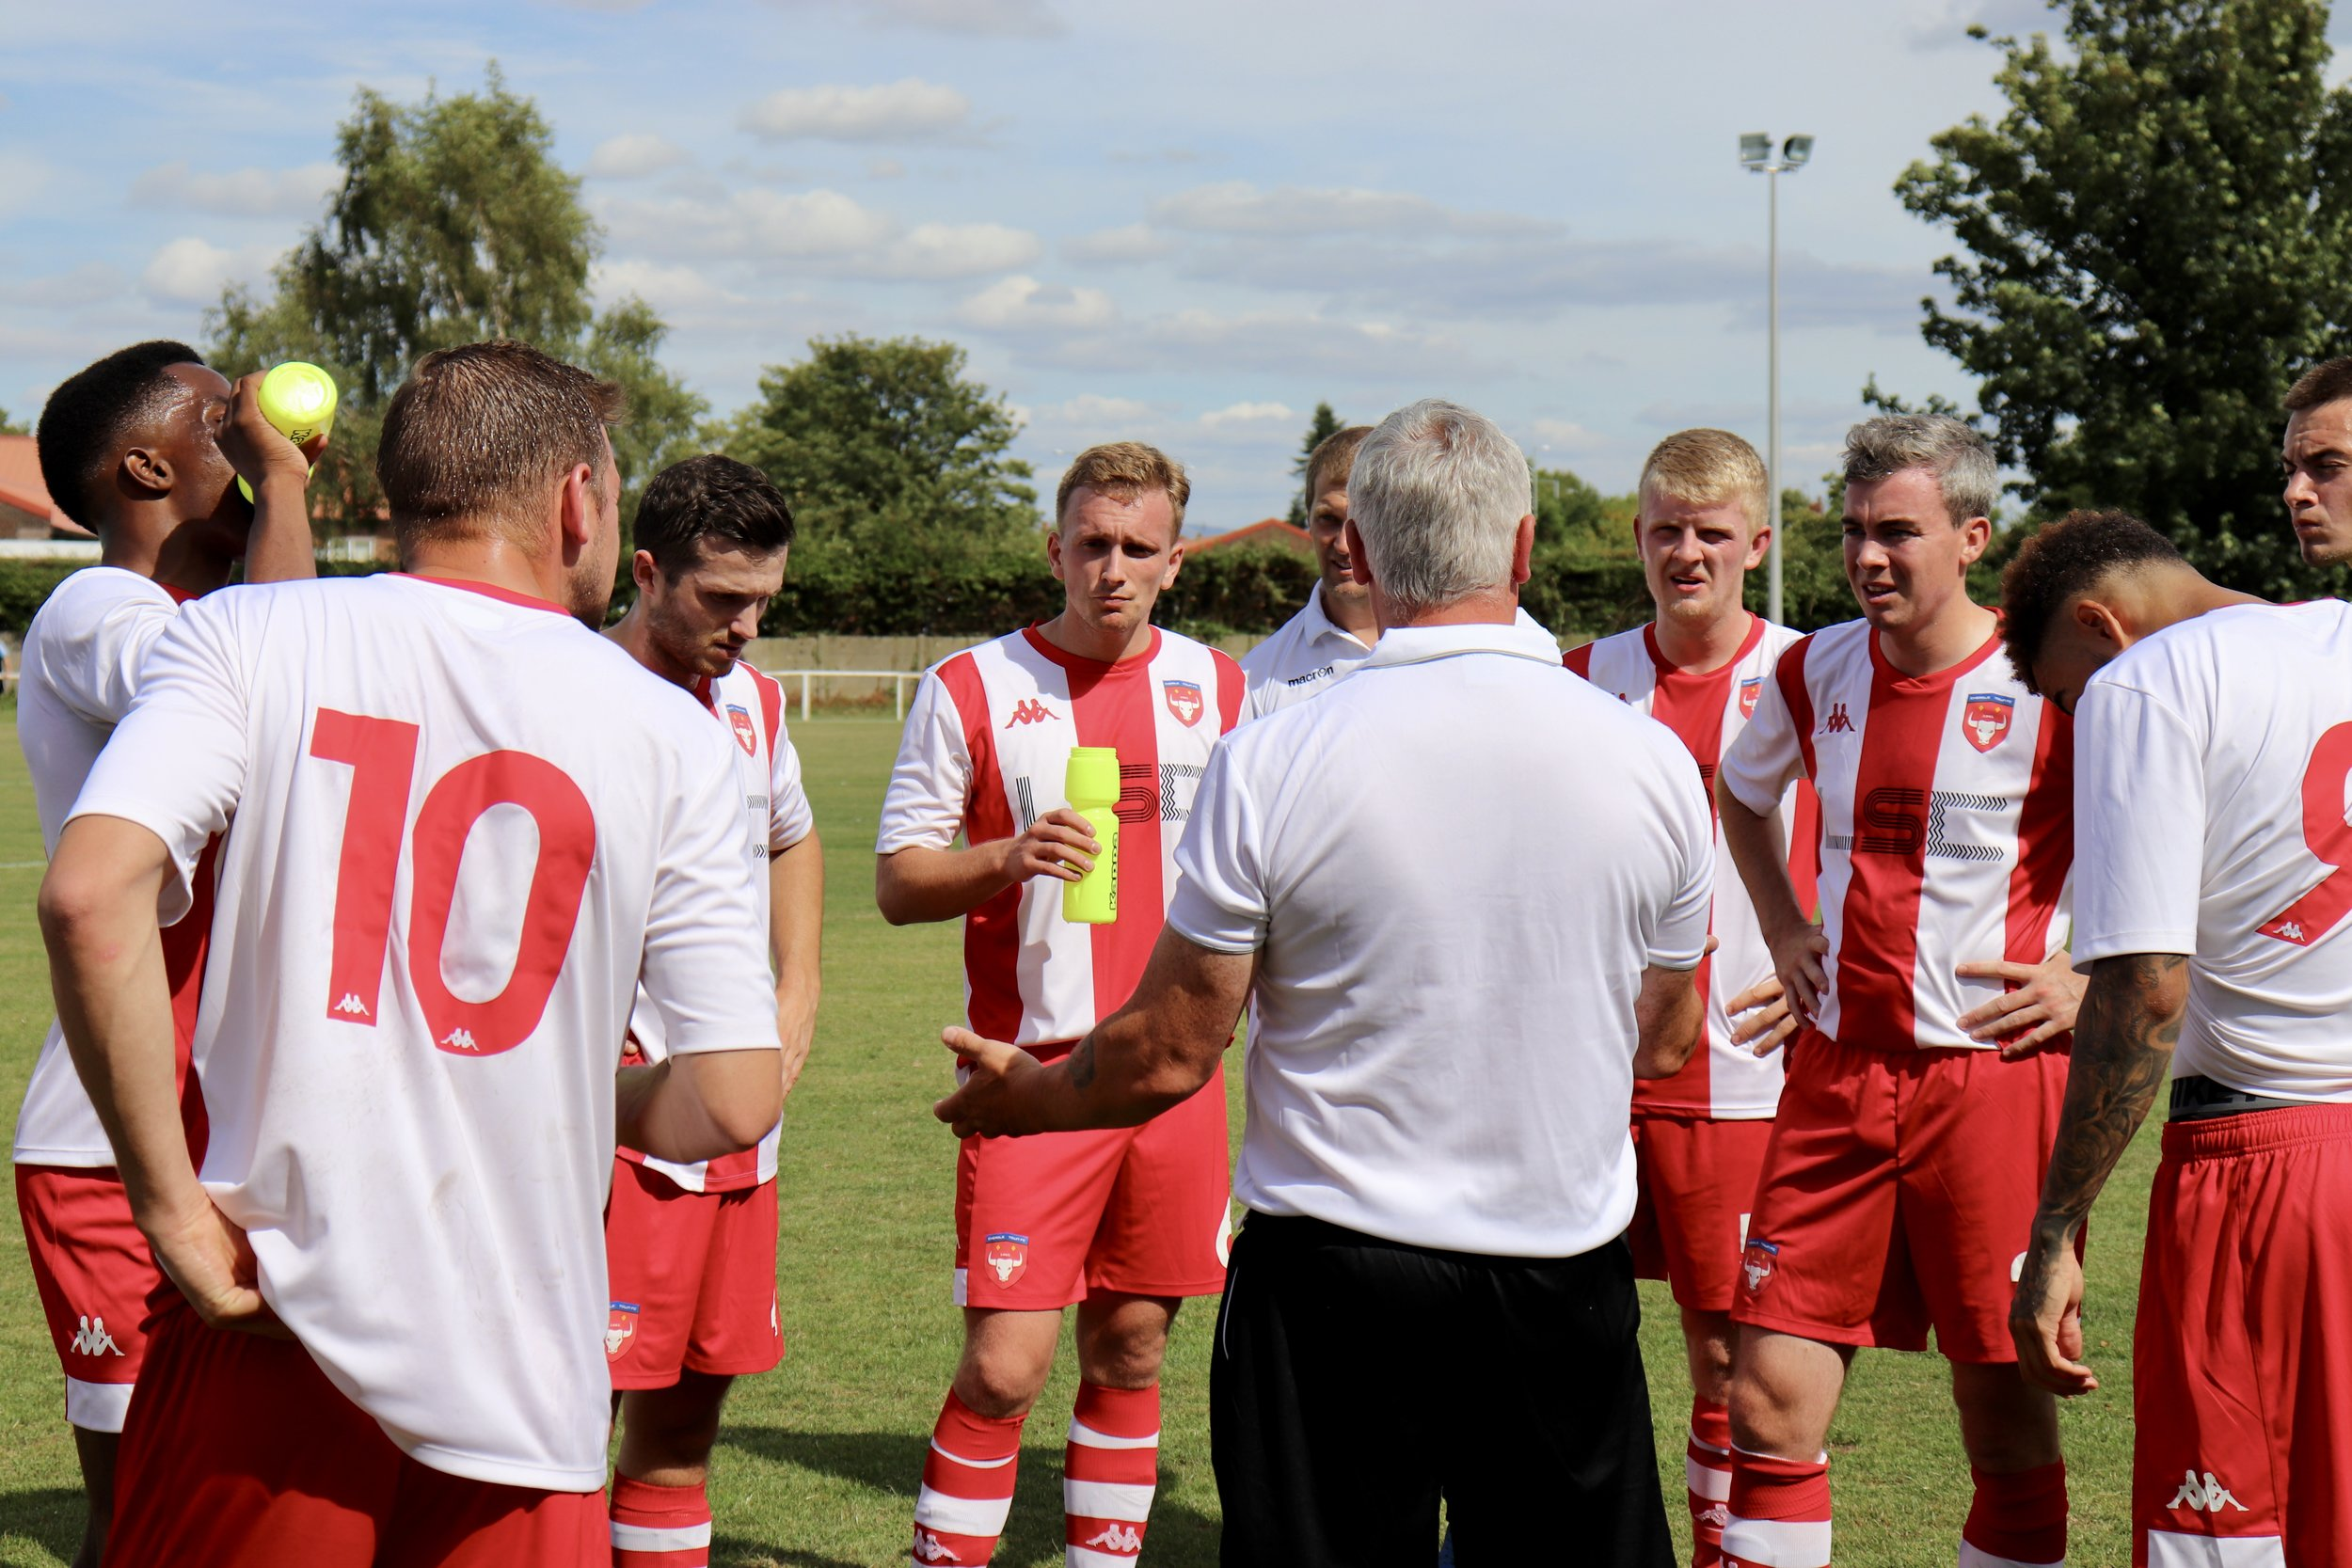 A drinks break midway through the first-half (yes, it was that warm!) gives Antony Trucca the chance to get his point across